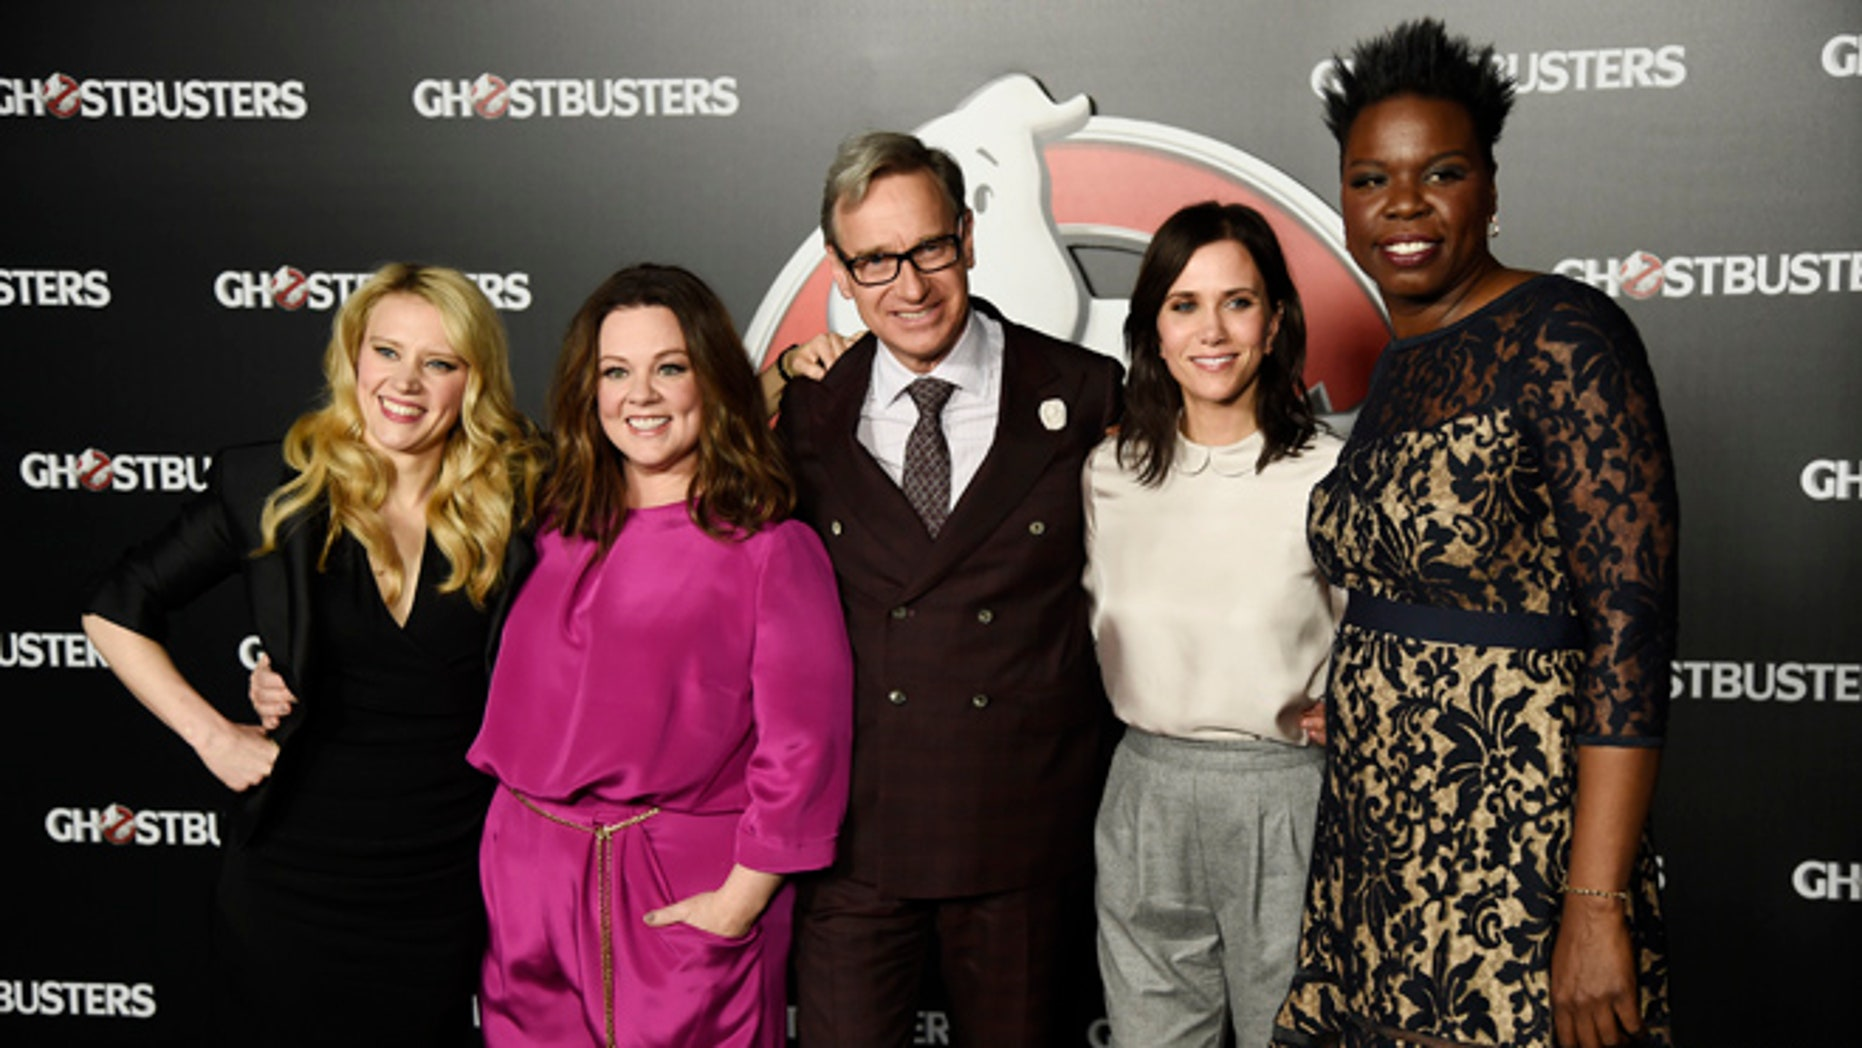 "FILE - In this April 12, 2016, file photo, director Paul Feig, center, poses with cast members, from left, Kate McKinnon, Melissa McCarthy, Kristen Wiig and Leslie Jones during the Sony Pictures Entertainment presentation of ""Ghostbusters,"" at CinemaCon 2016 in Las Vegas. The film will be released nationwide on Friday, July 15. (Photo by Chris Pizzello/Invision/AP, File)"